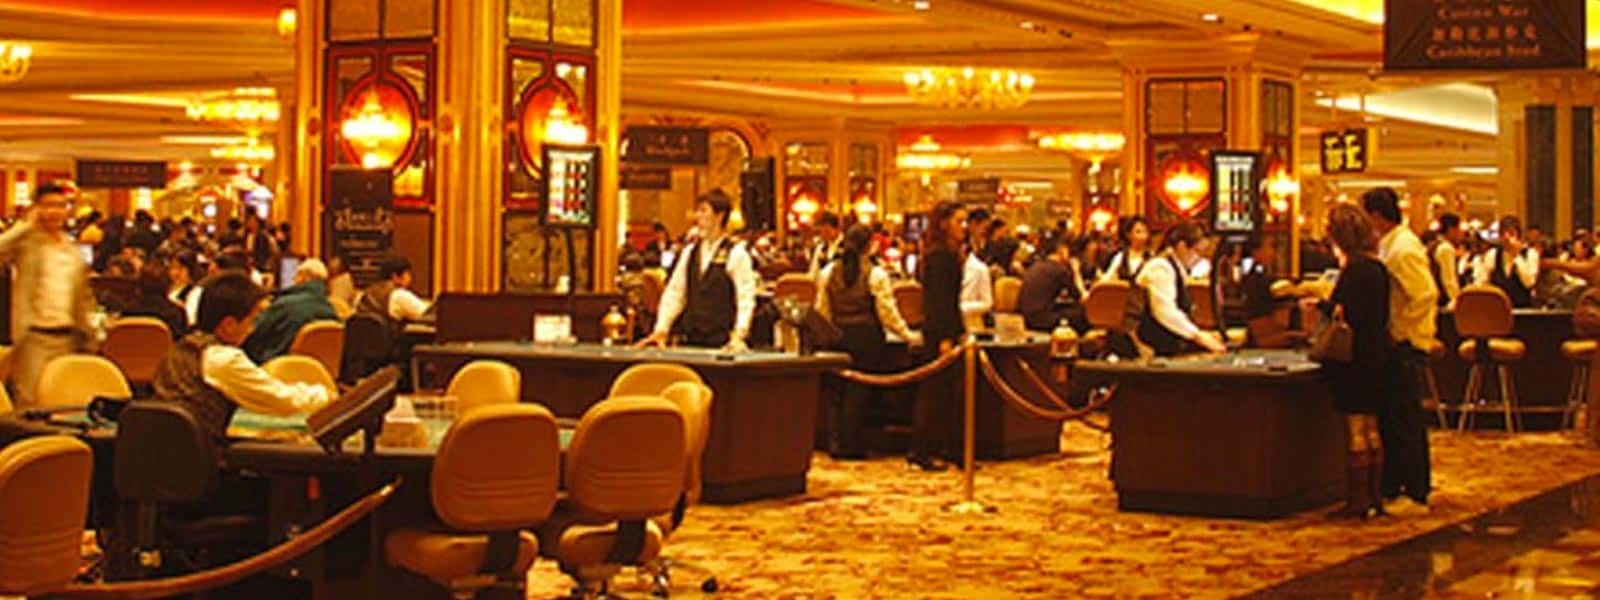 Macau: Gross Gaming Revenue Up 2 Percent In May